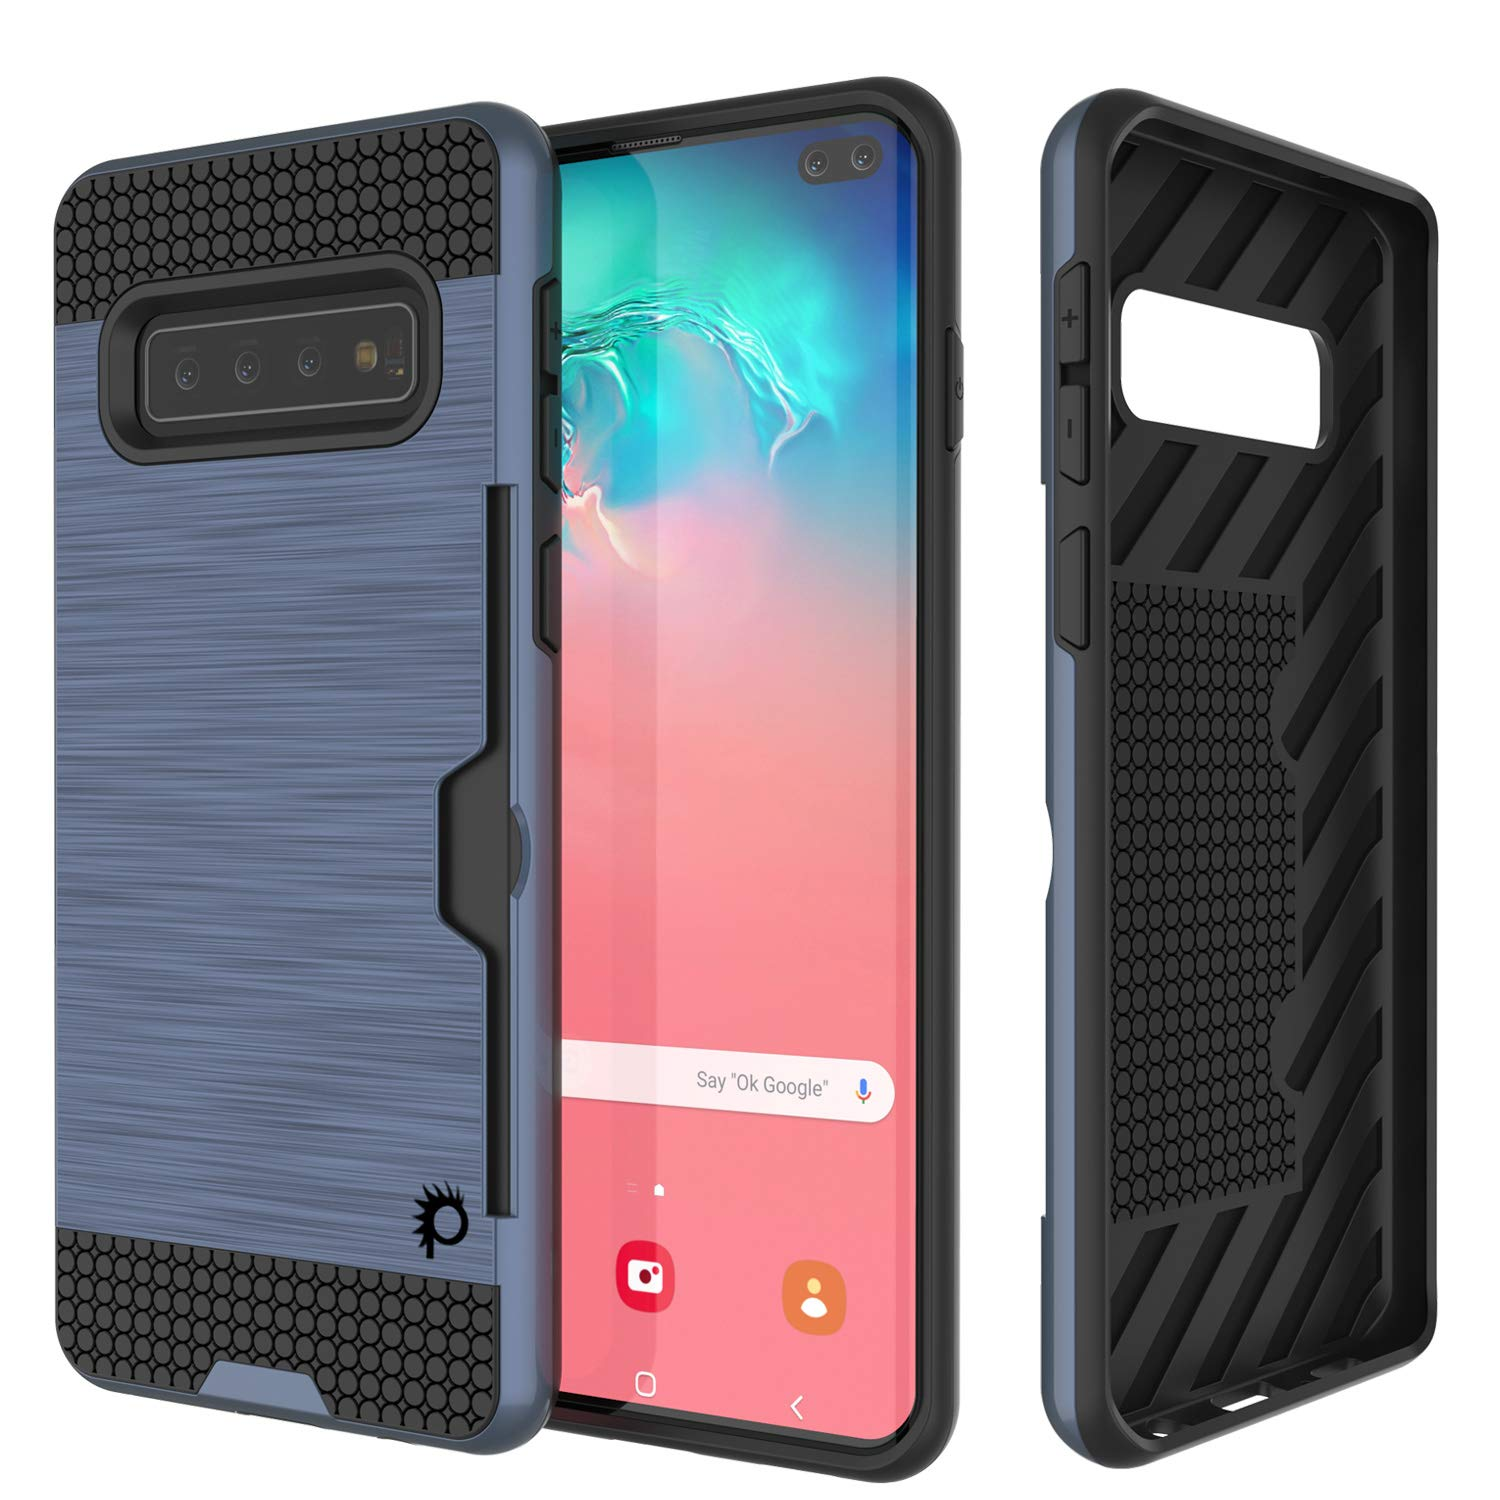 Galaxy S10+ Plus  Case, PUNKcase [SLOT Series] [Slim Fit] Dual-Layer Armor Cover w/Integrated Anti-Shock System, Credit Card Slot [Navy]